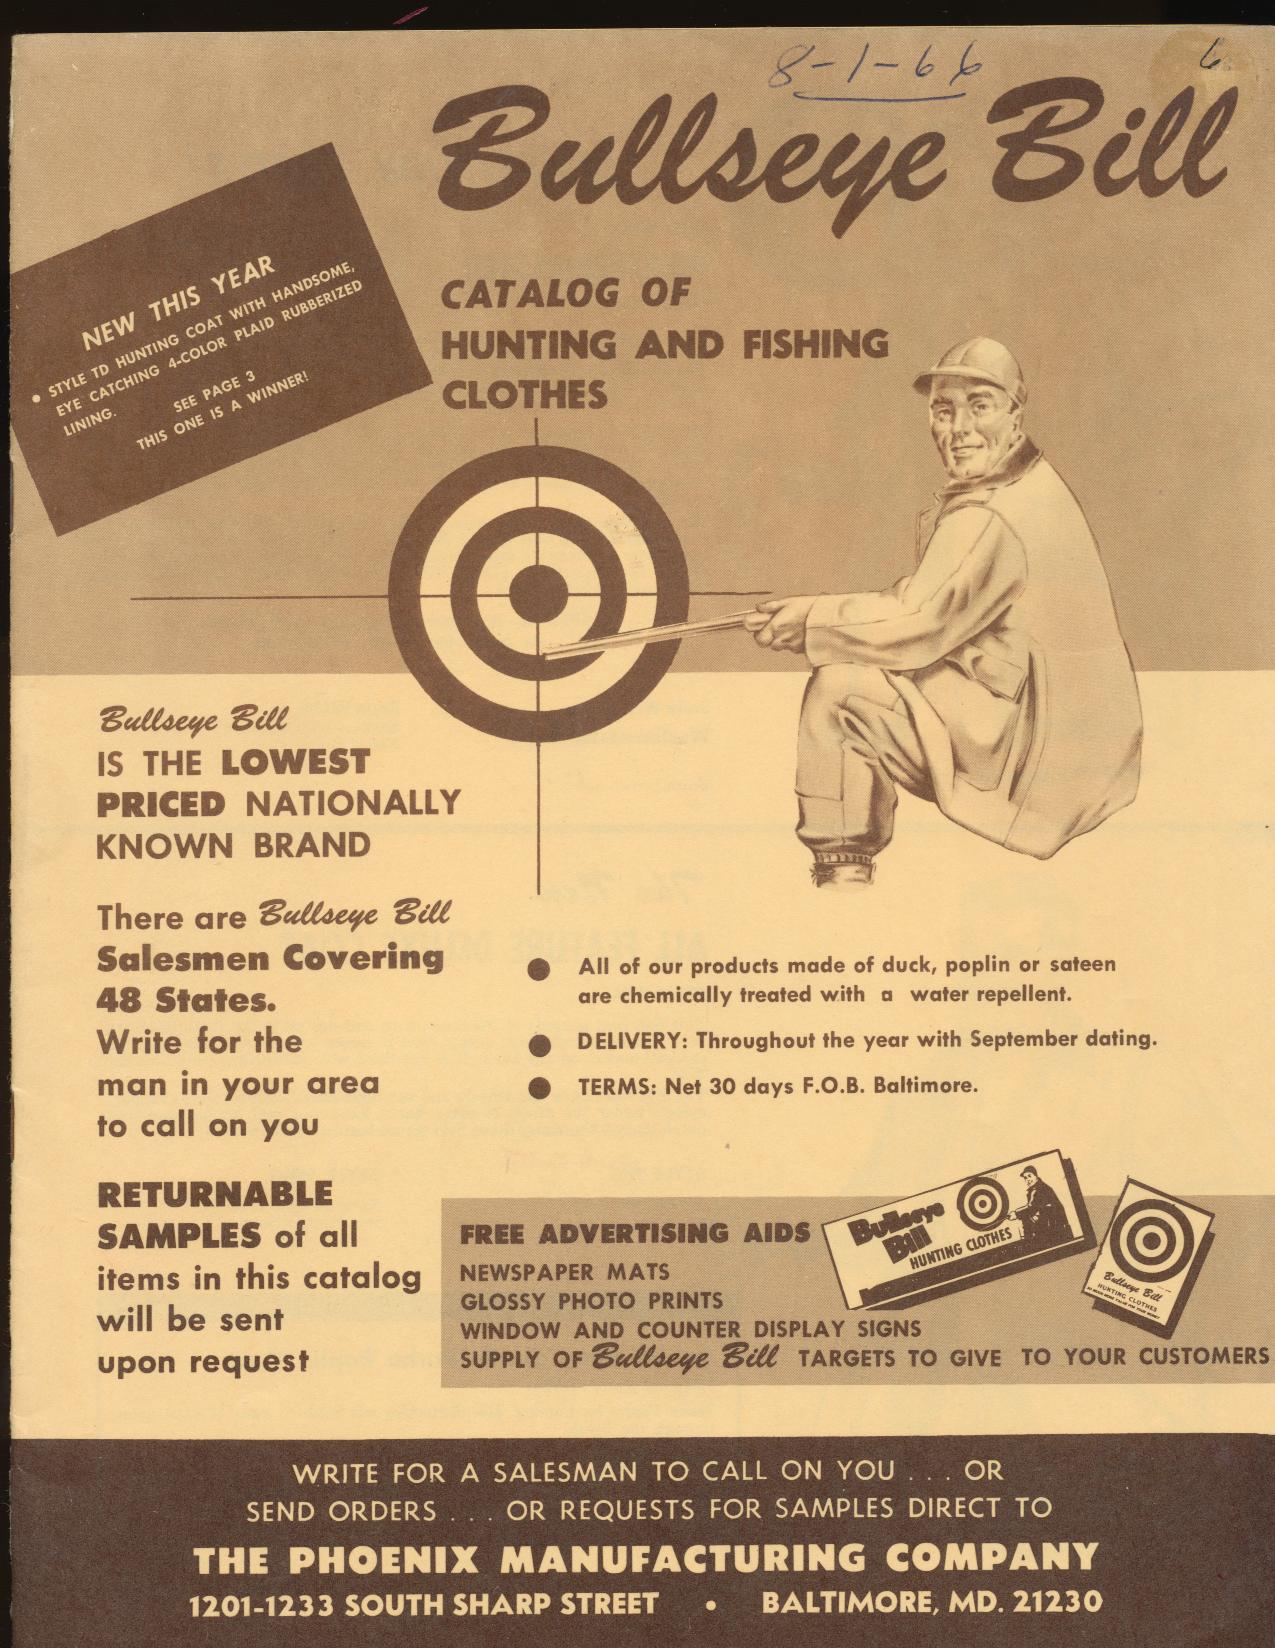 1966 Bullseye Bill Hunting/Fishing Clothes Dealer Trade Catalog